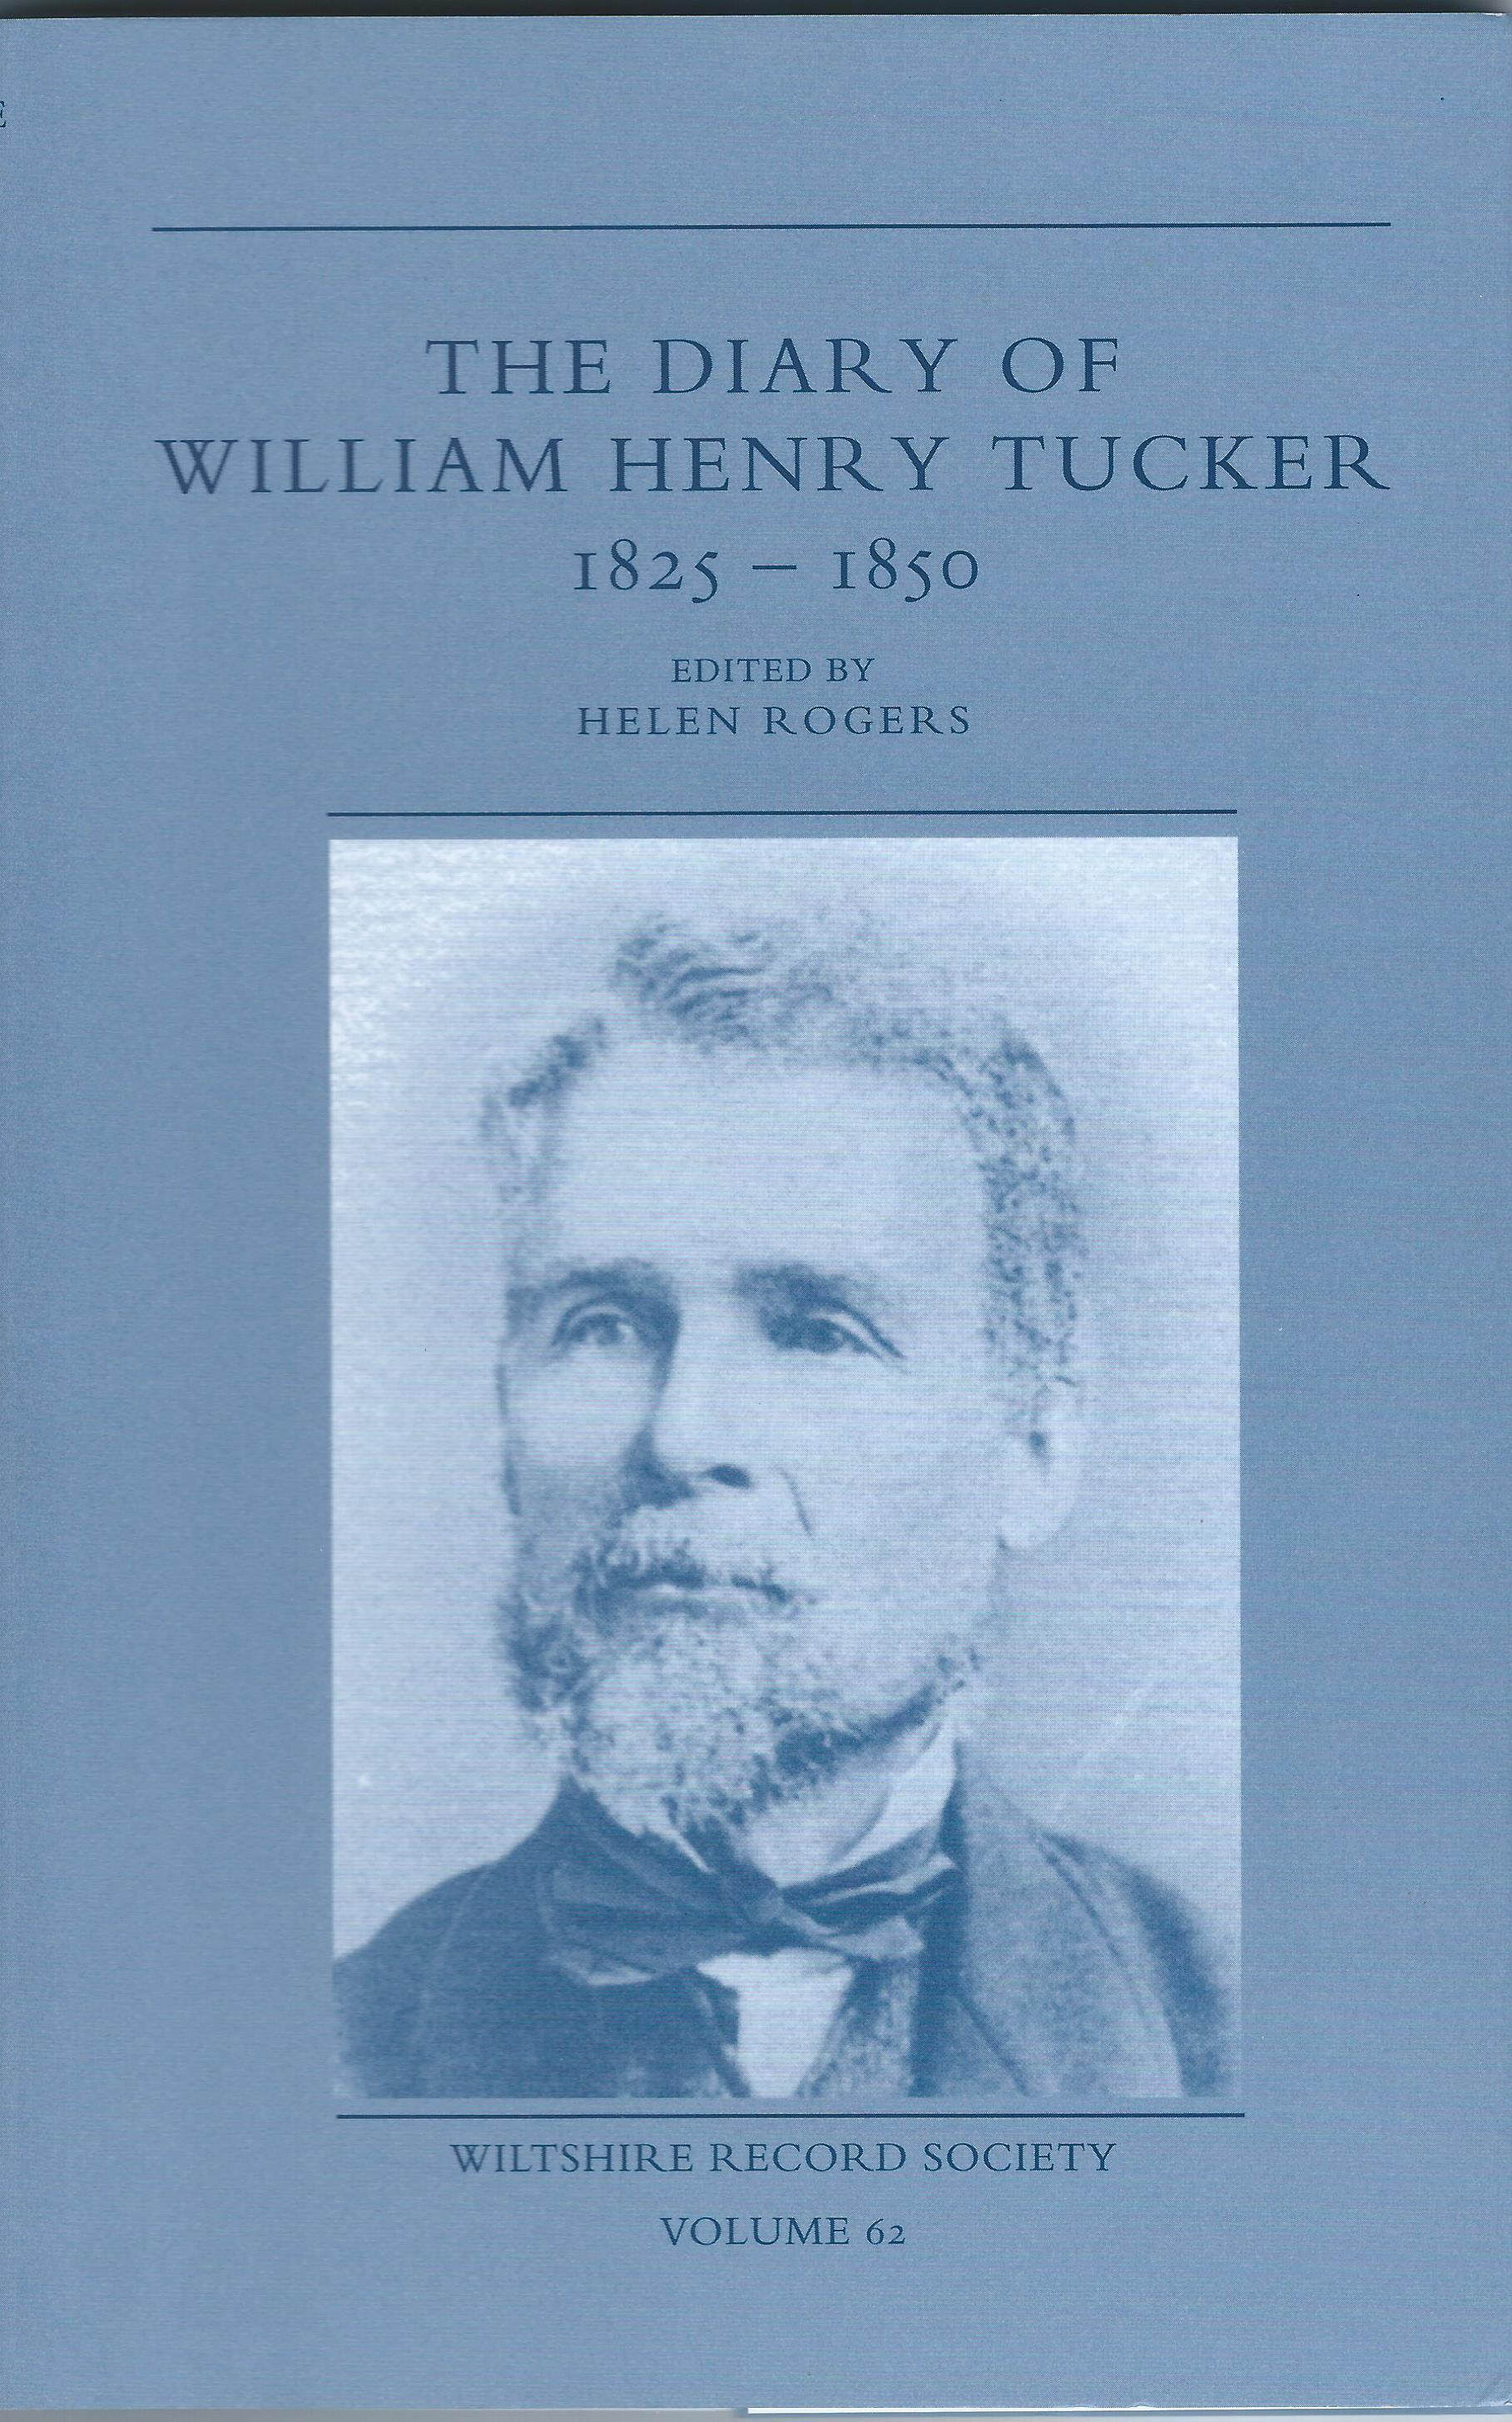 The Diary of William Henry Tucker